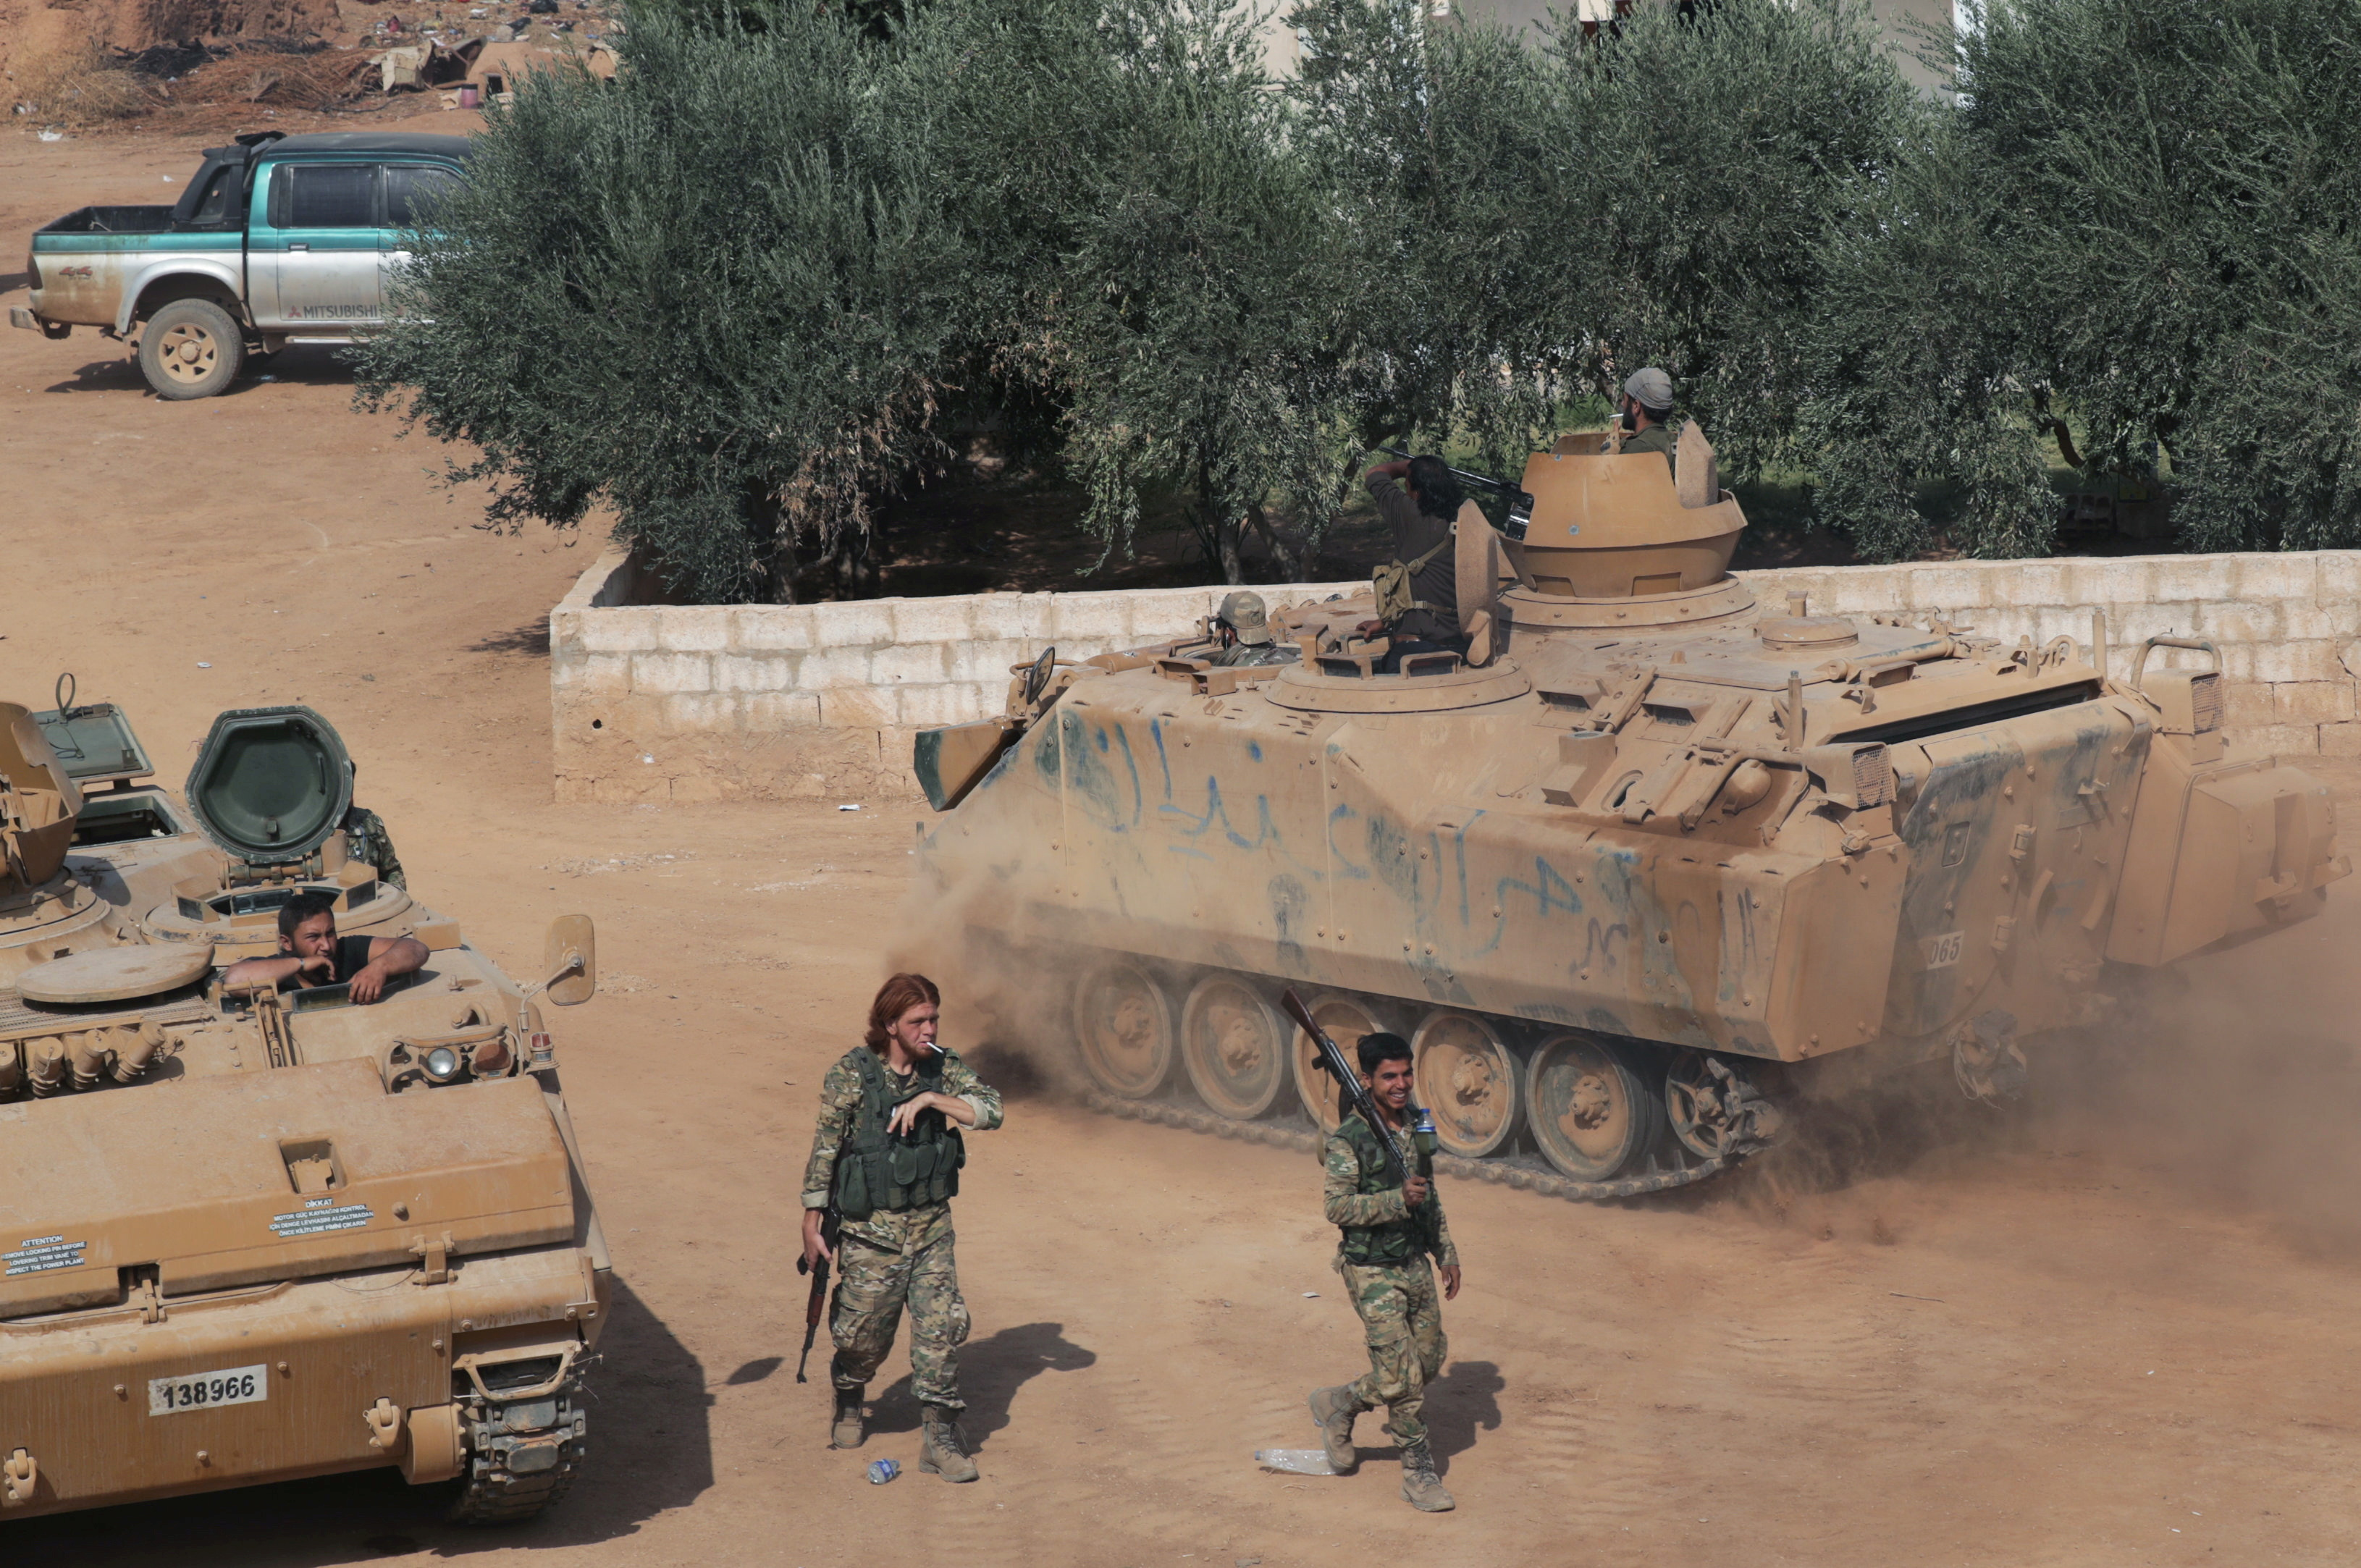 Turkey-backed Syrian rebel fighters walk past military tanks as they gather near the border town of Tal Abyad, Syria October 24, 2019. REUTERS/Khalil Ashawi/File Photo